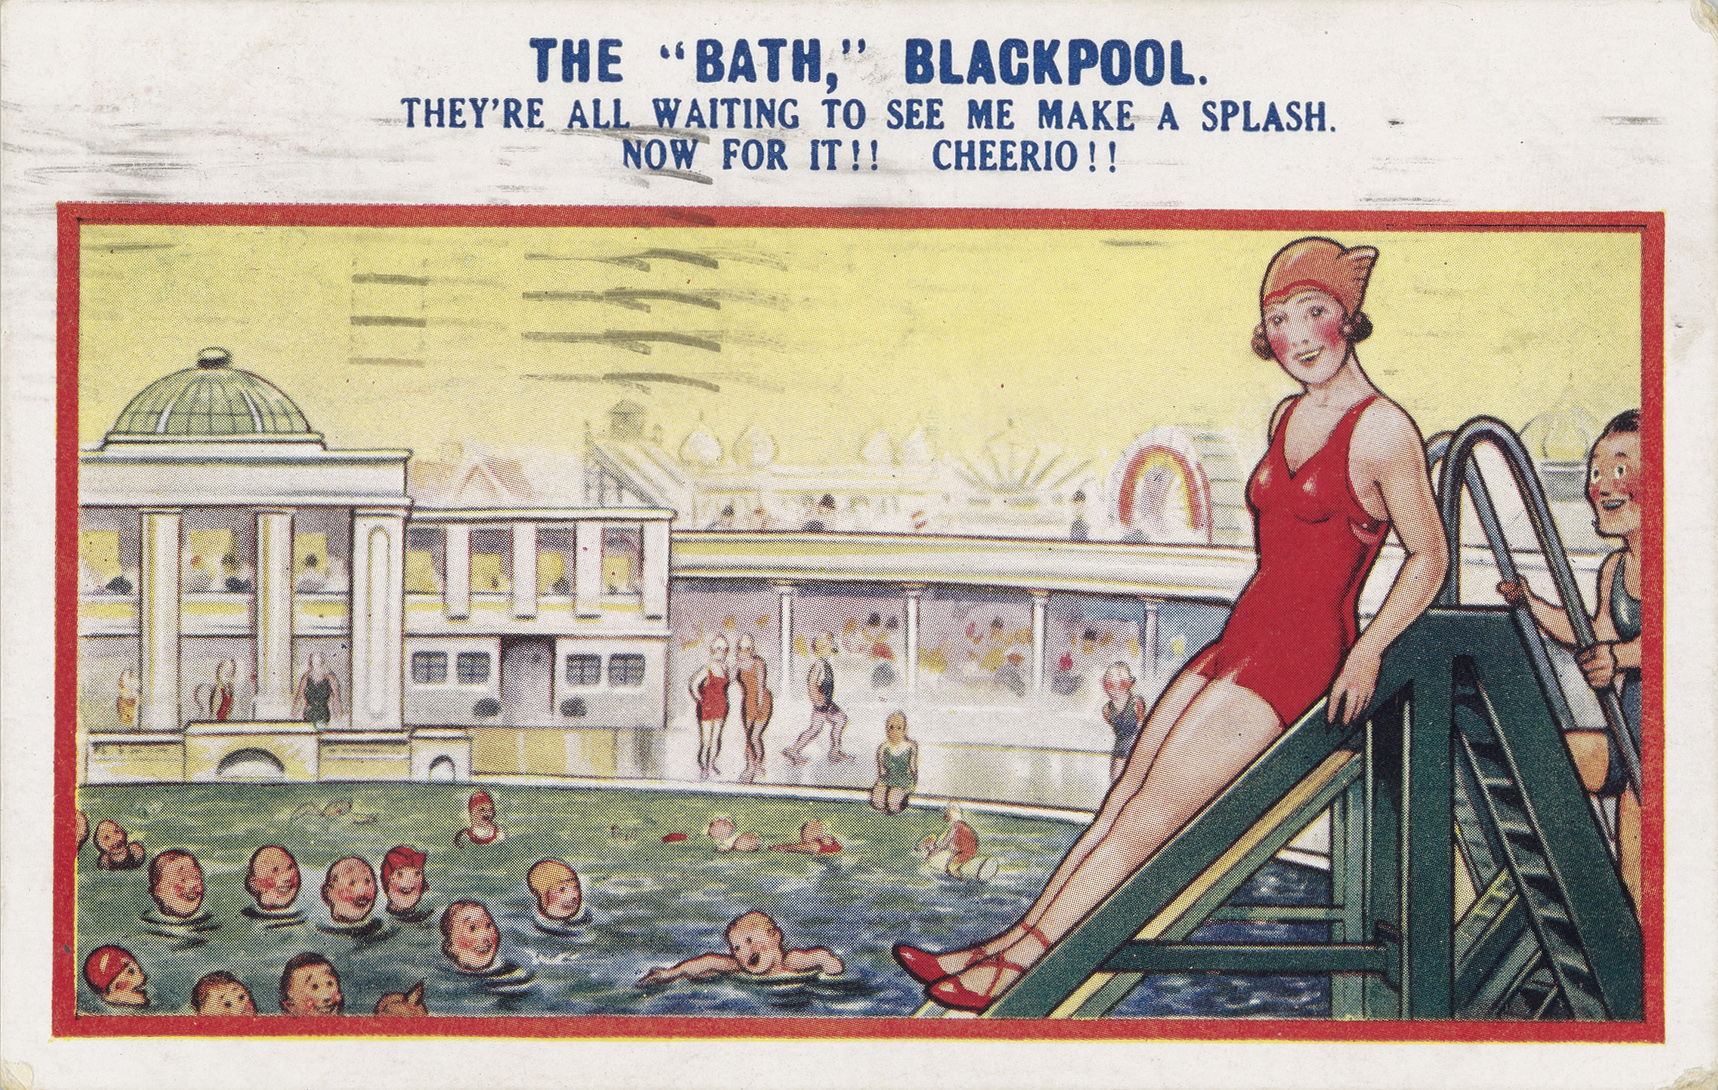 Postcard of a women in a red cap about to do down a slide into the water where may other people are swimming.